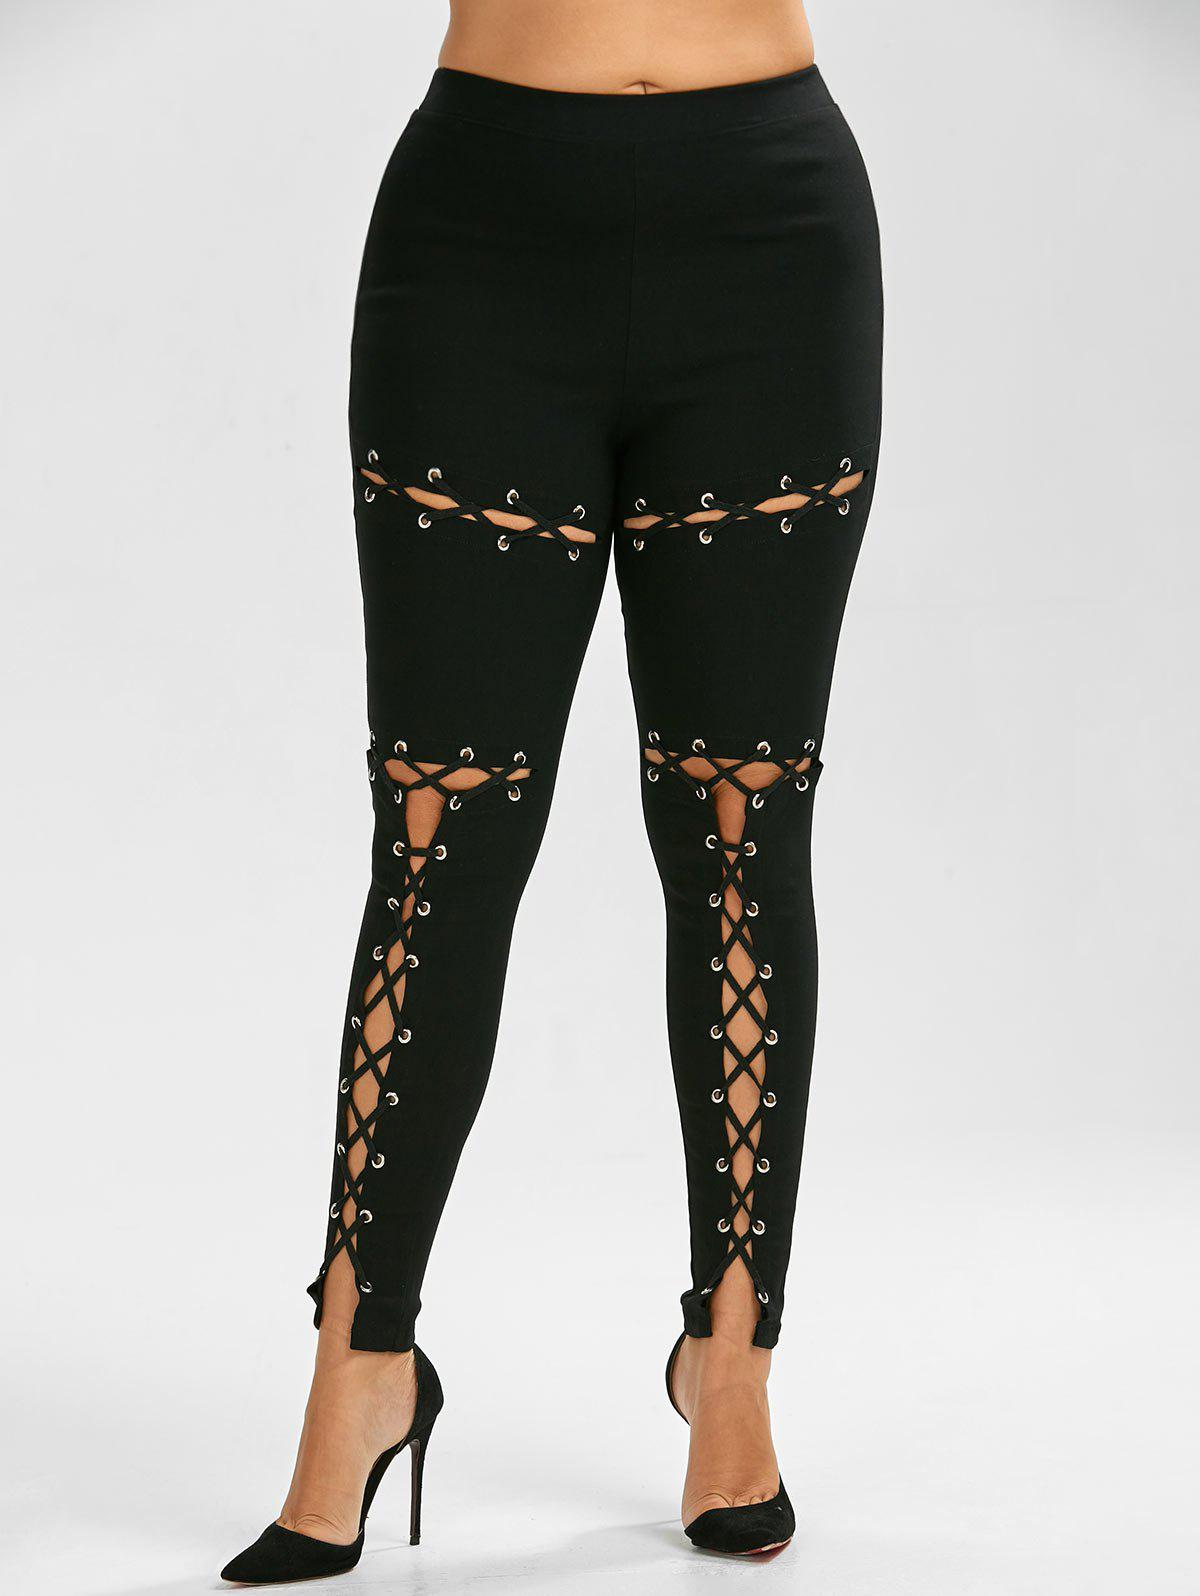 Lace Up Plus Size Skinny High Waisted PantsWOMEN<br><br>Size: 3XL; Color: BLACK; Style: Punk; Length: Normal; Material: Polyester; Fit Type: Skinny; Waist Type: High; Closure Type: Elastic Waist; Pattern Type: Solid; Pant Style: Pencil Pants; With Belt: No; Weight: 0.4500kg; Package Contents: 1 x Pants;